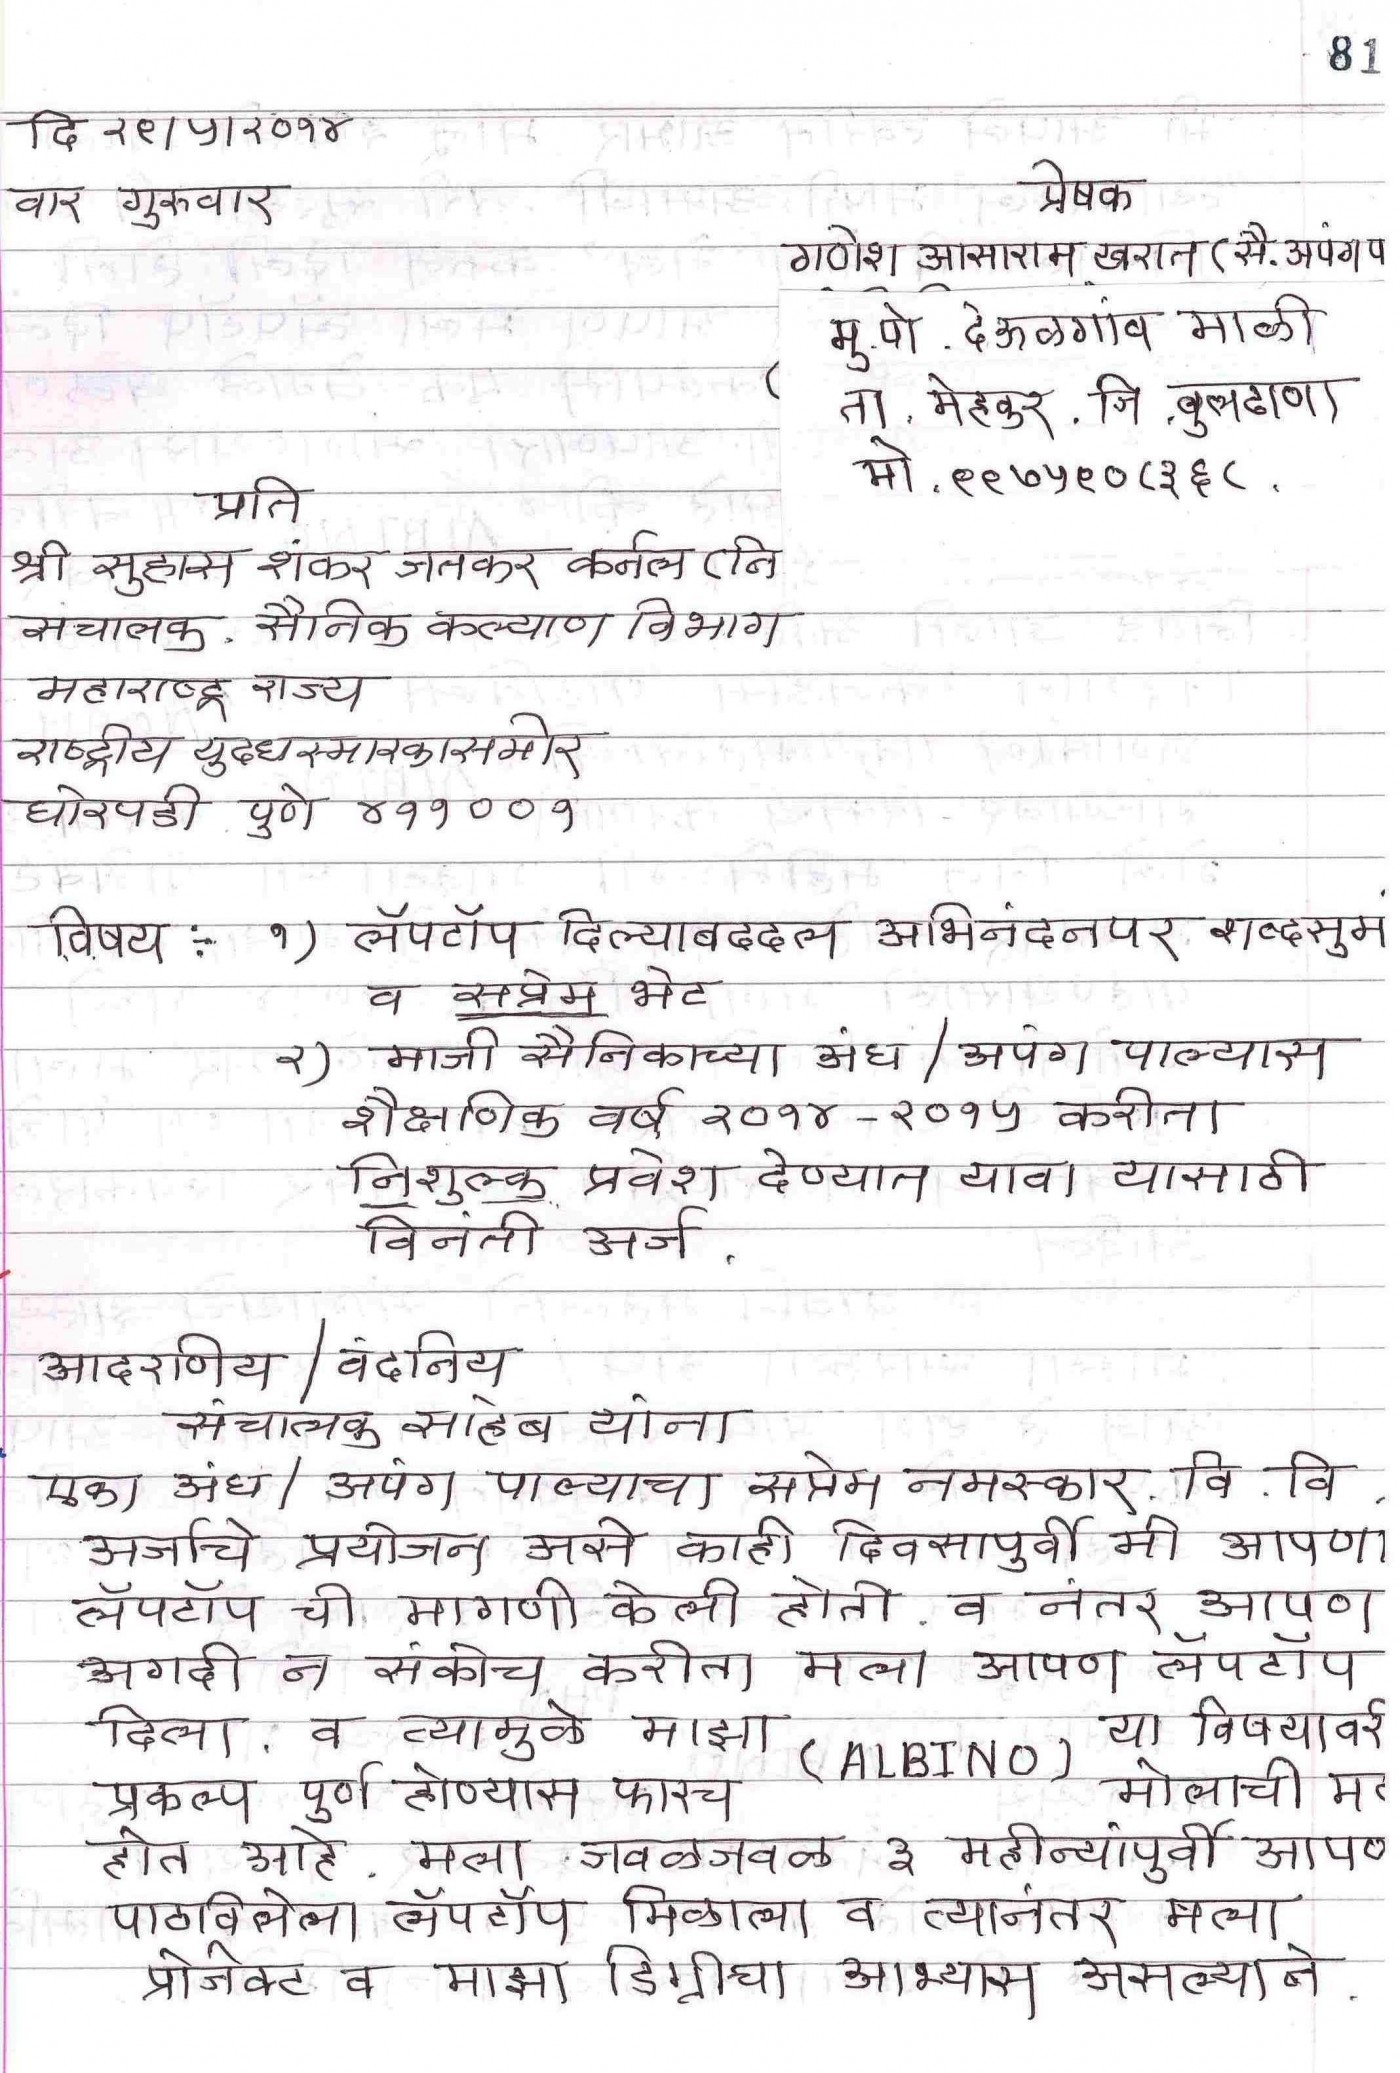 004 Staggering Hindi Letter Writing Format Pdf Free Download Concept 1400